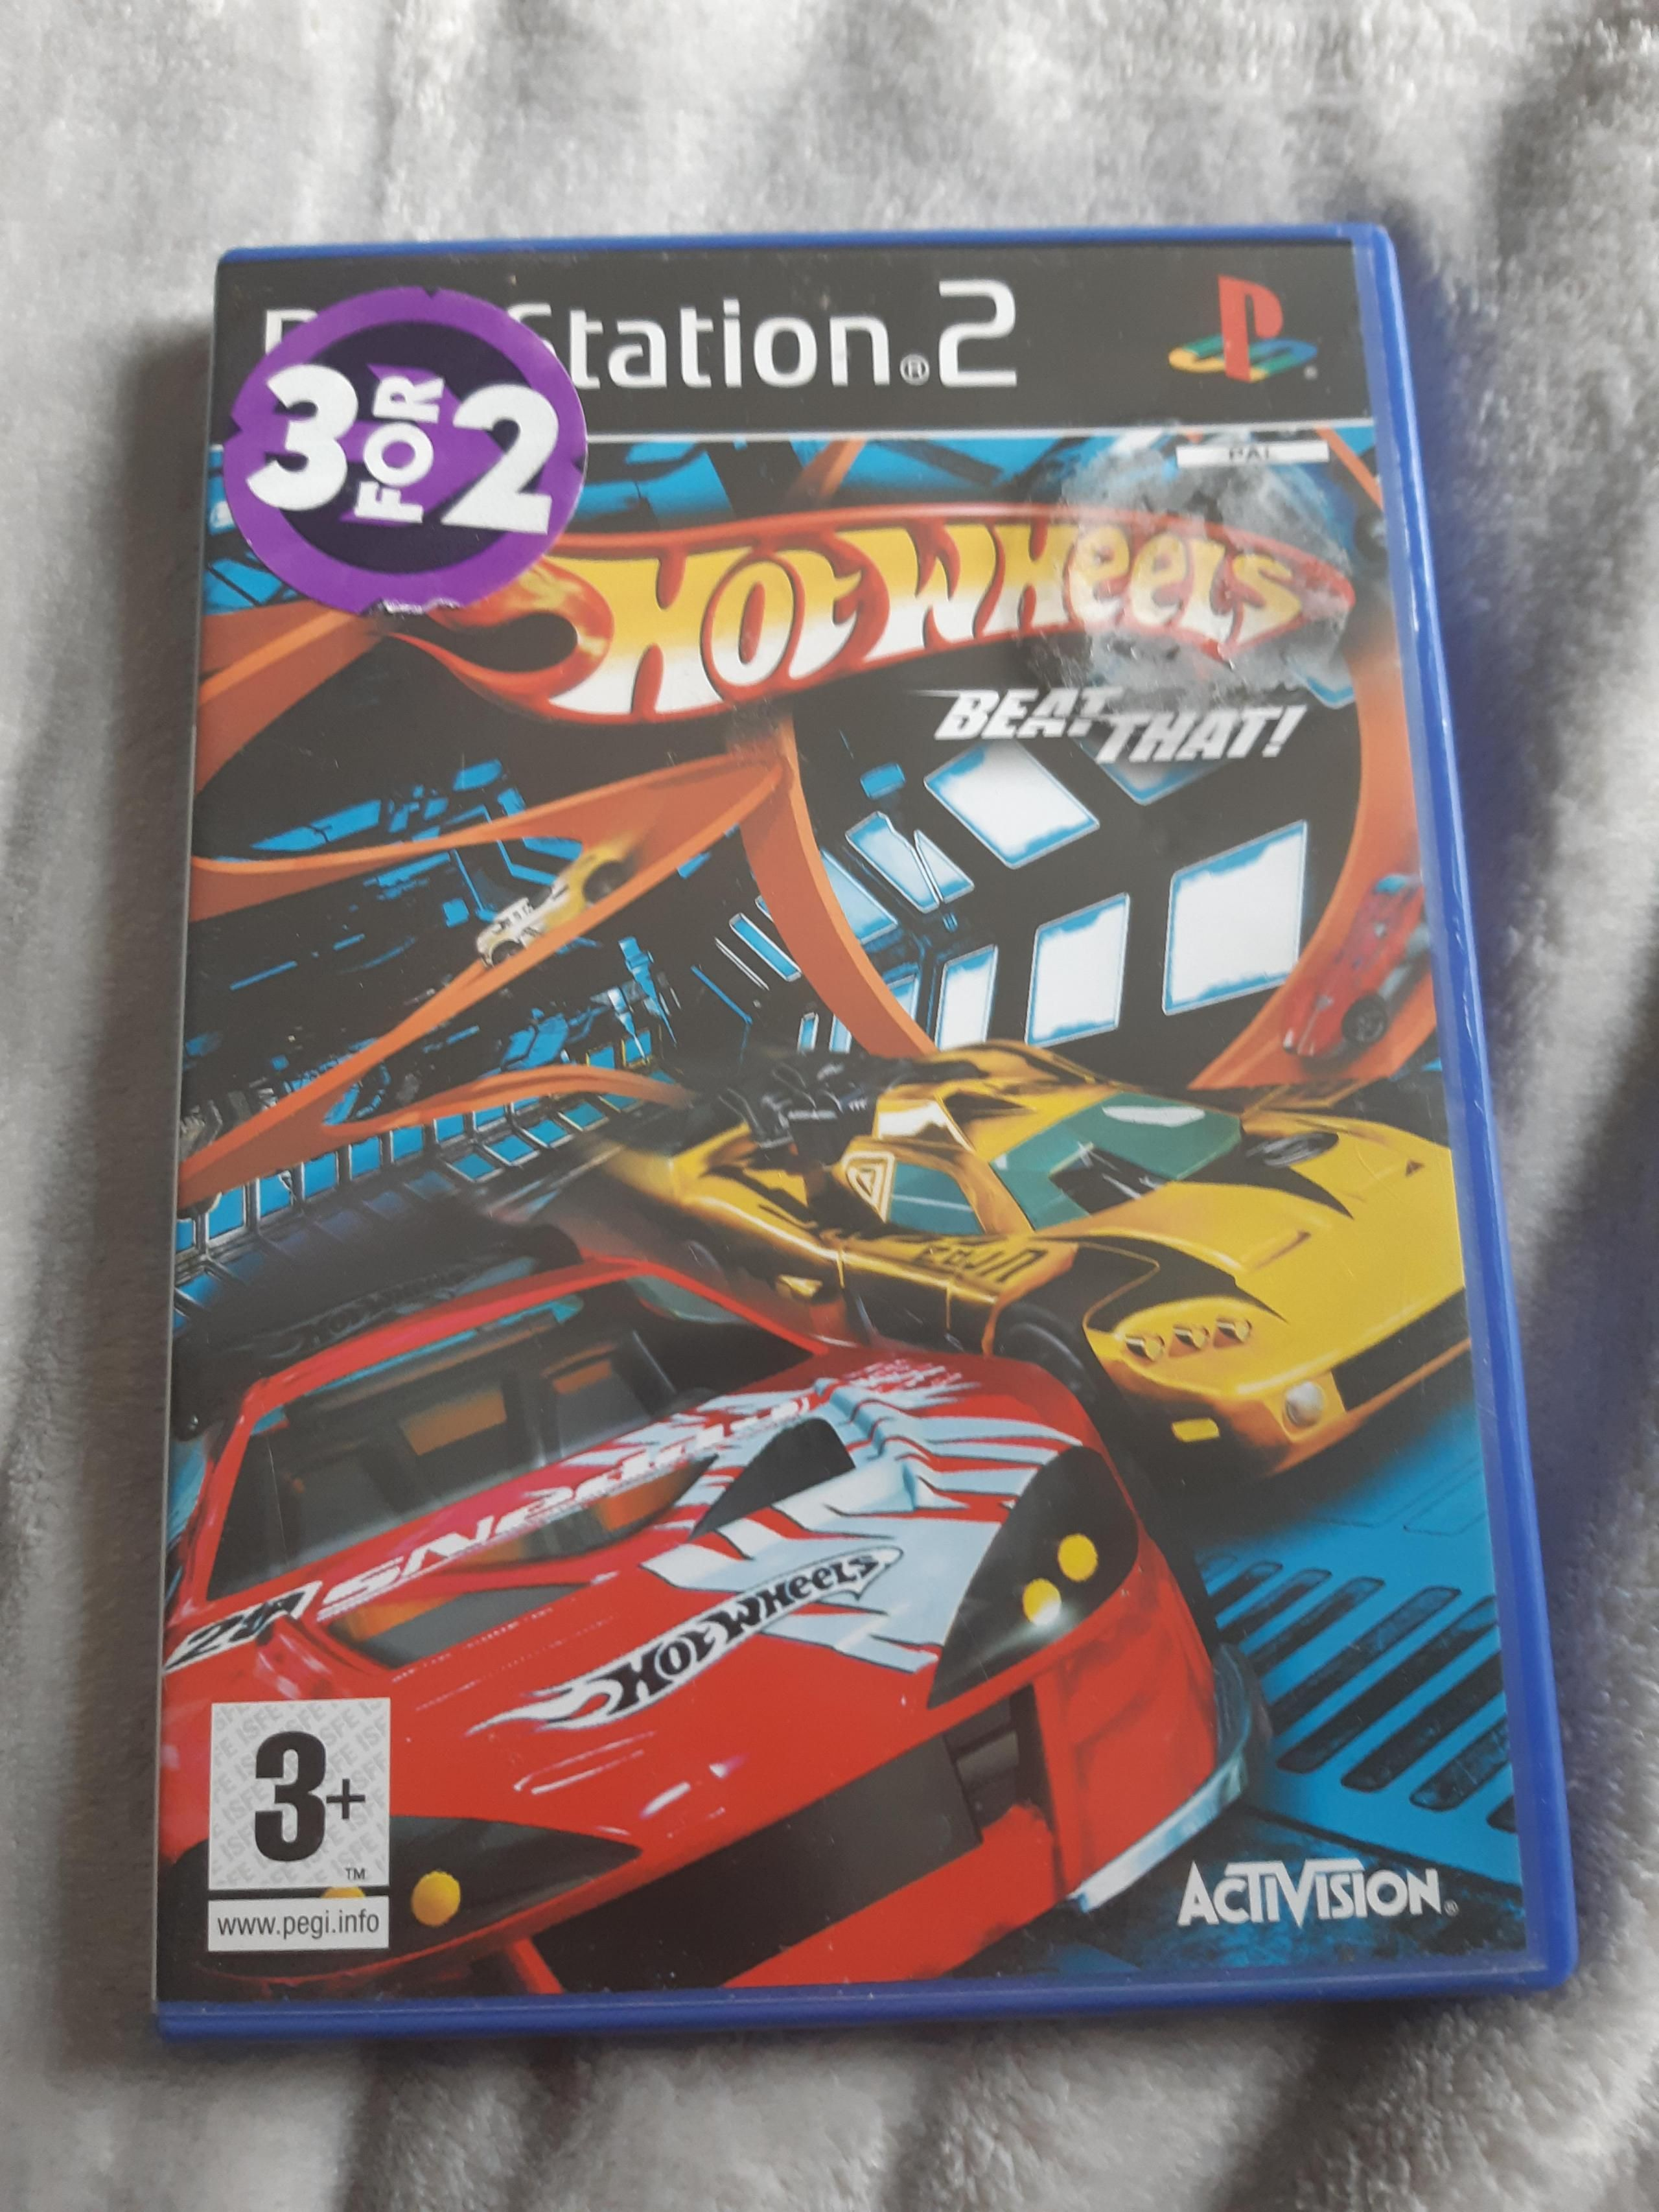 Ps2 Hotwheels Beat That Hot Wheels Activision Ps2 Games